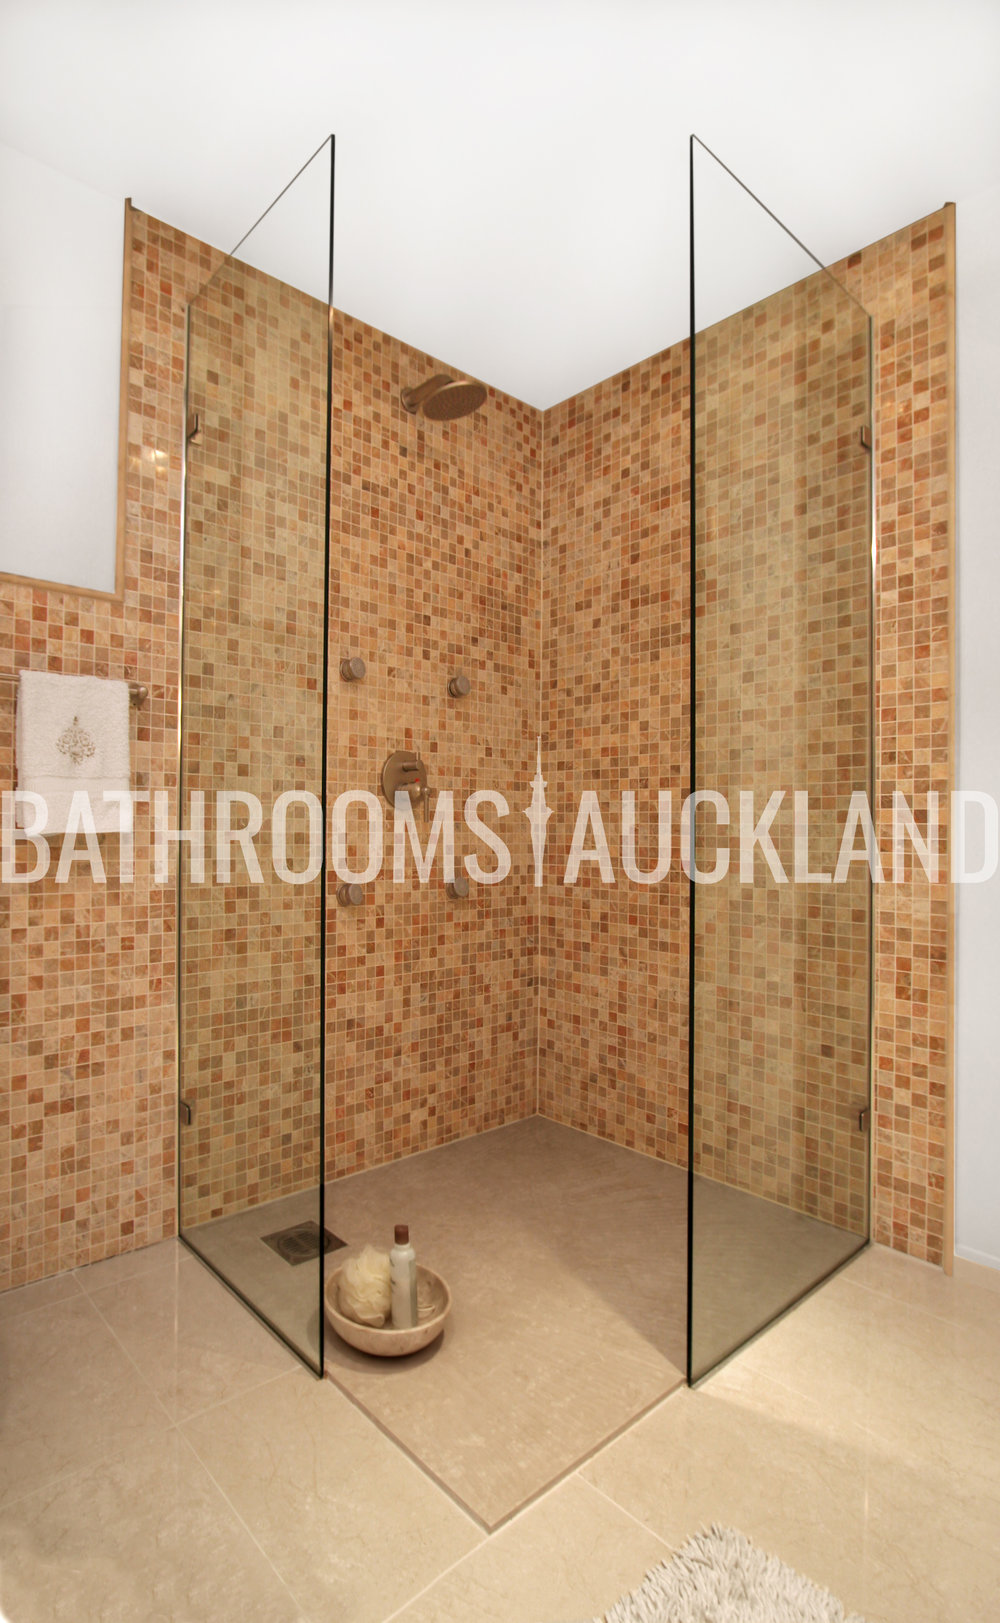 Bathrooms Auckland Renovation_Bathrooms In Auckland_Bathroom Renovation_Bathrooms Renovation_Bathrooms Auckland Renovation .122.jpg